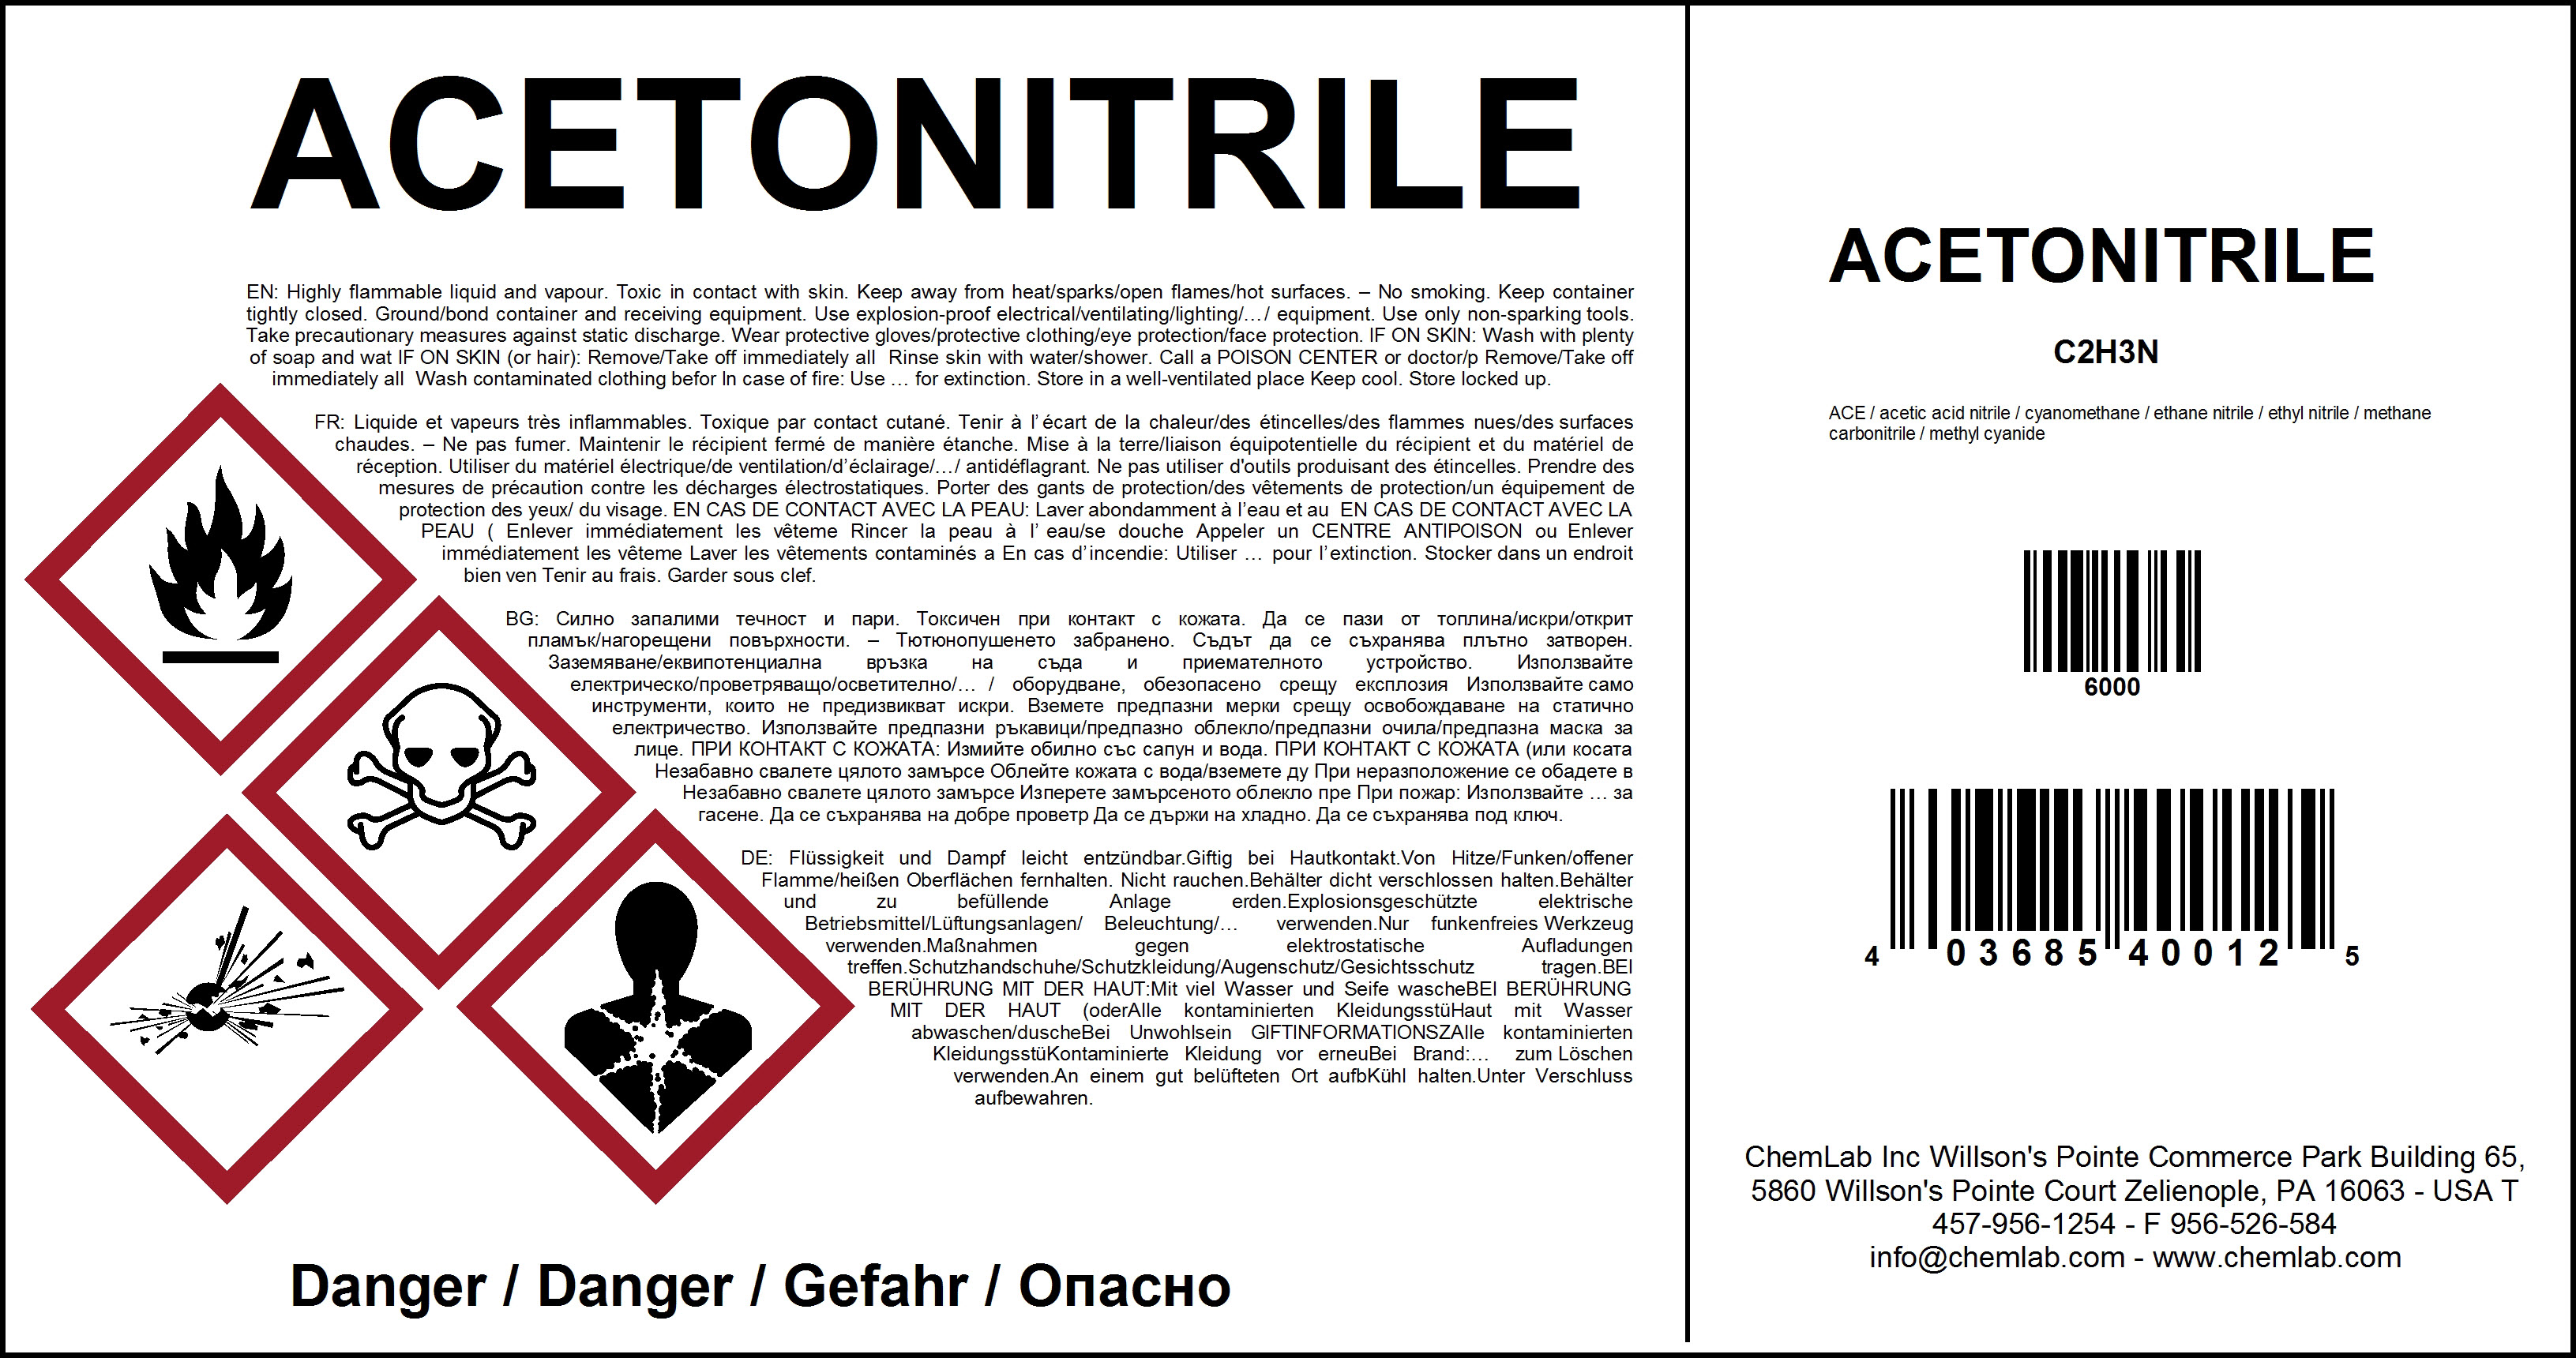 Special Precautionary Information GHS Secondary Label, SKU: LB 2915